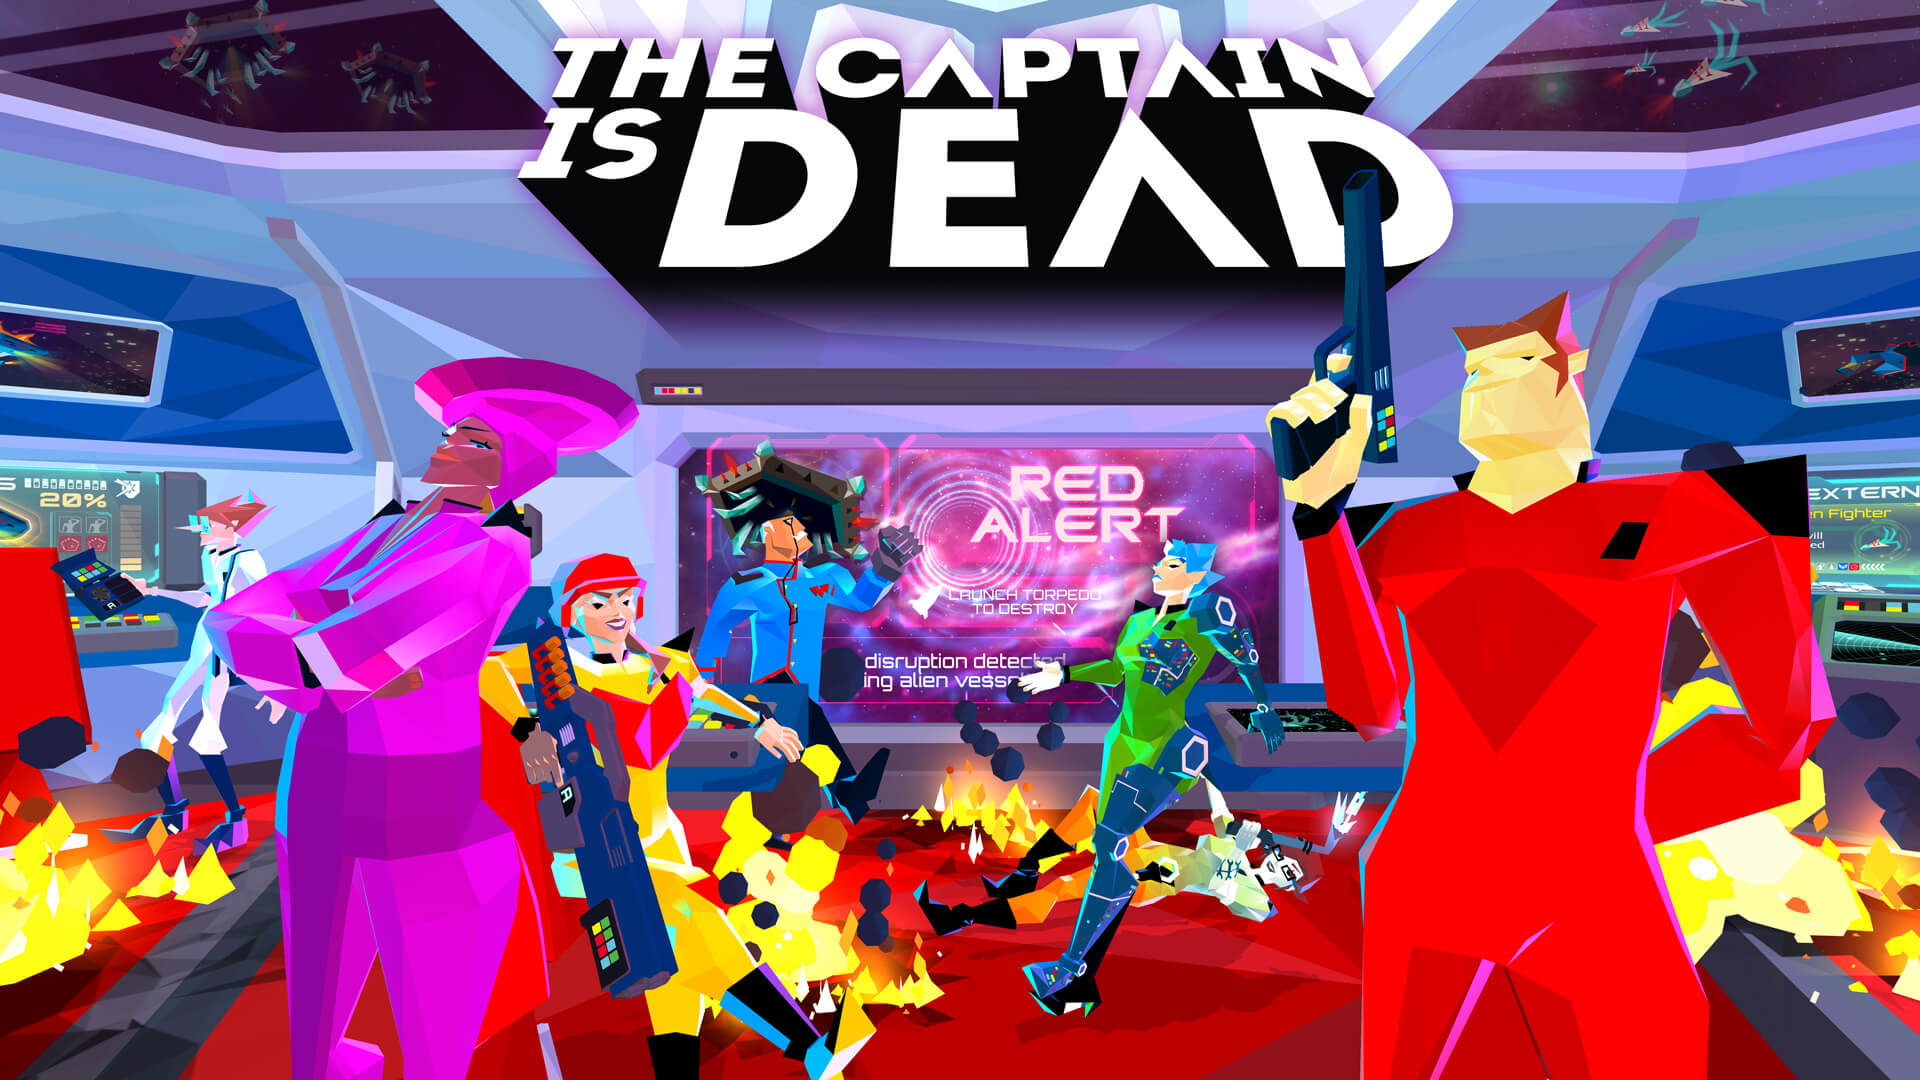 The Captain is Dead PC Game